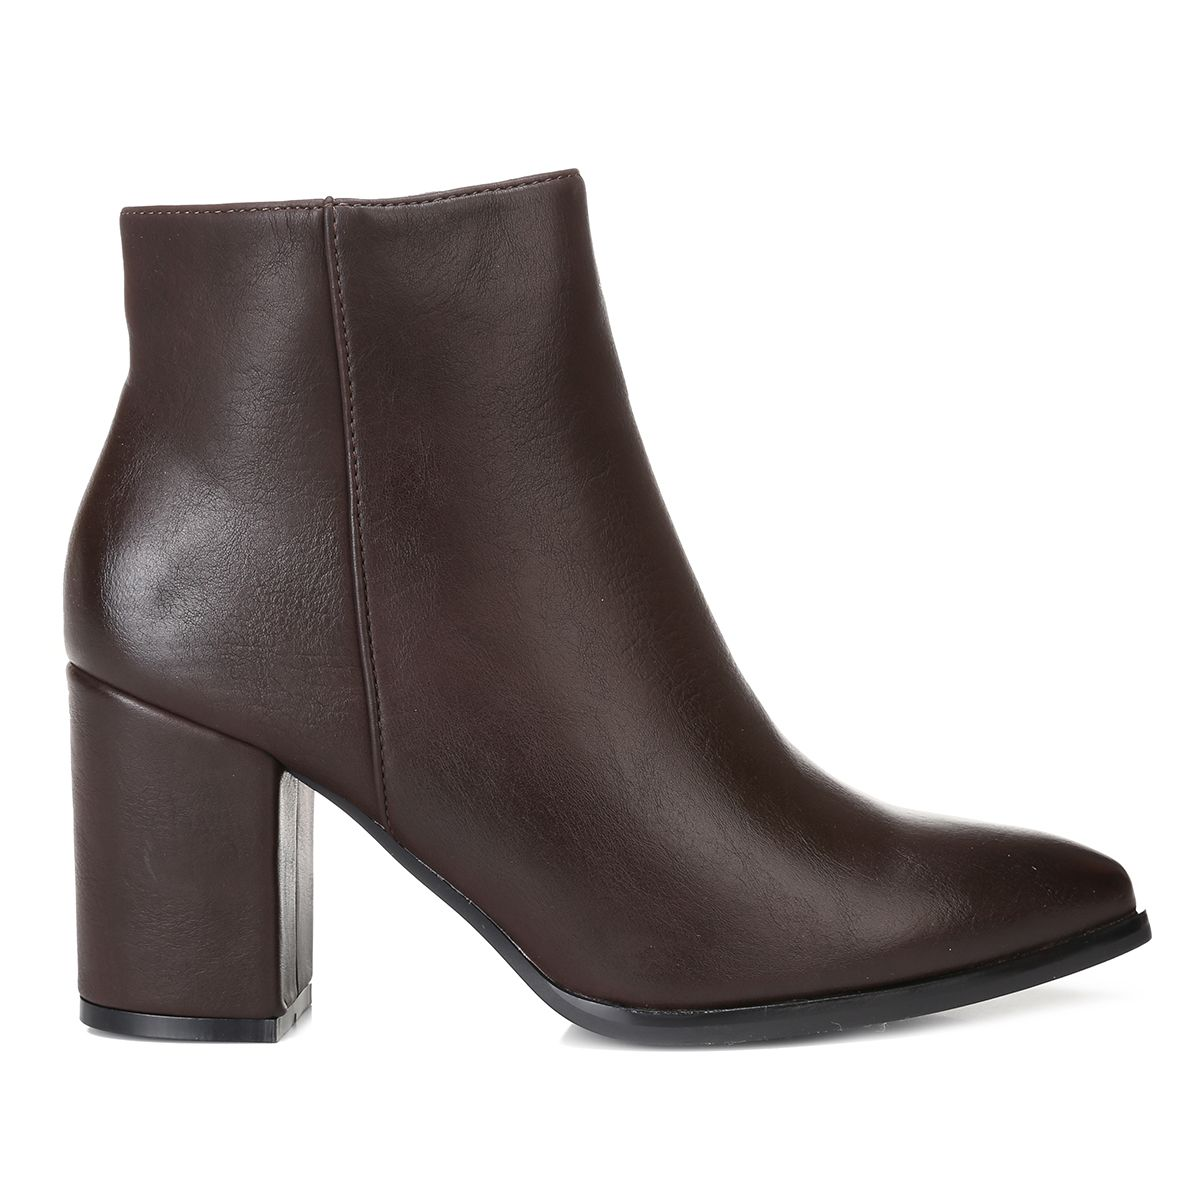 Bottines marron en simili cuir à talon carré et bout pointu